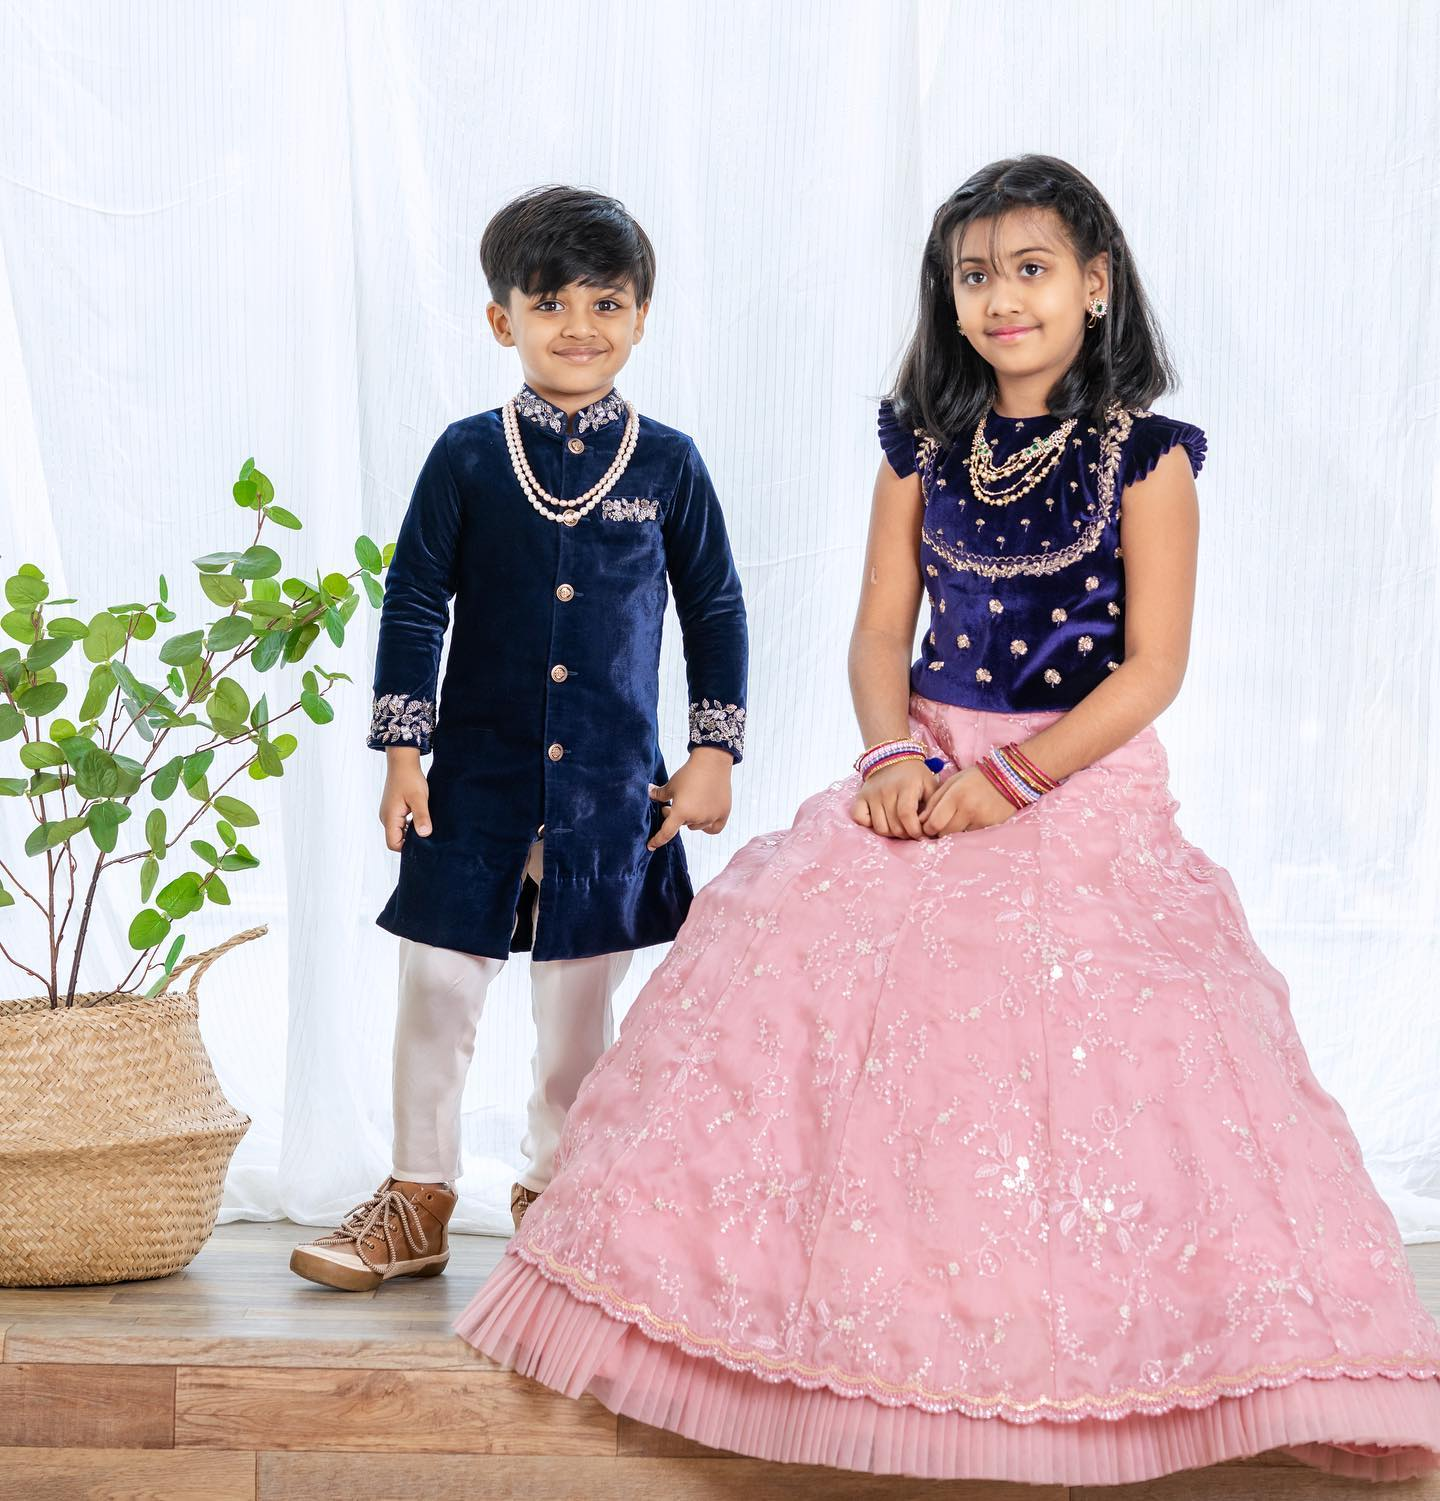 Royal Rascals. Royal kids outfit by Issa Studio. 2021-04-01